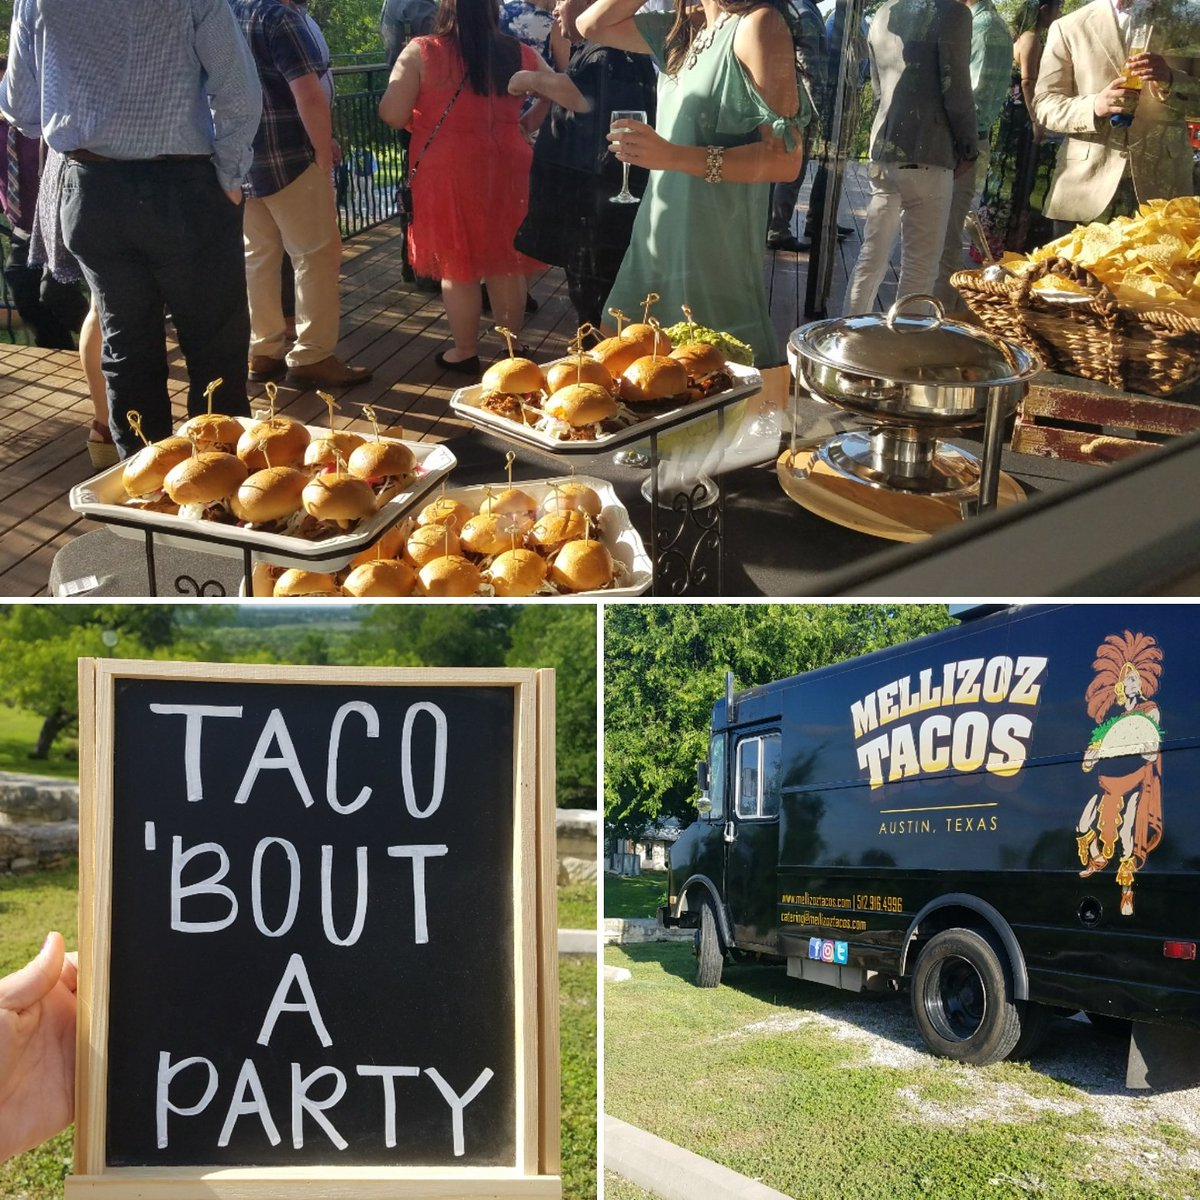 Mellizoz Tacos On Twitter Book To Cater Your Wedding Taco Truck Bar Or Send Off Loveisy Tacotruckwedding Sendofftacos